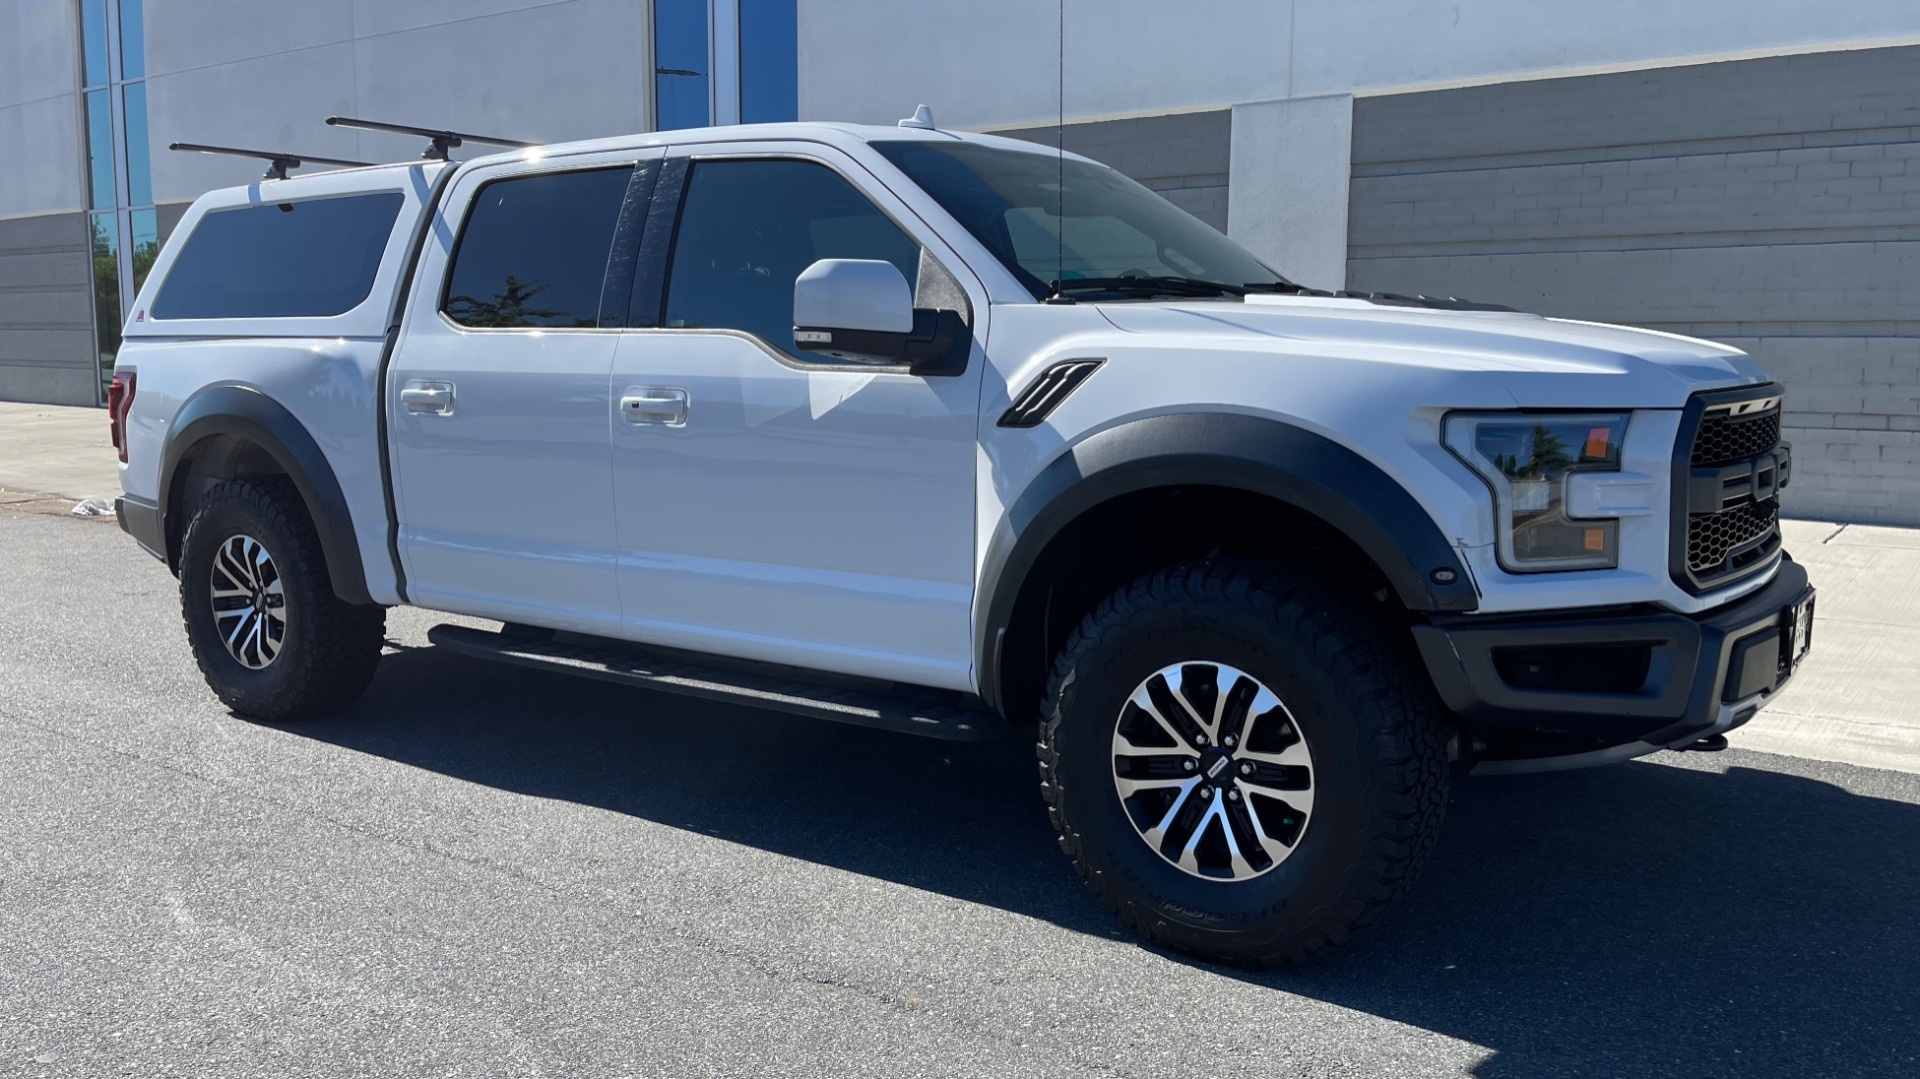 Used 2019 Ford F-150 RAPTOR 4X4 SUPERCREW / NAV / BLIS / B&O SND / REMOTE START / REARVIEW for sale $65,999 at Formula Imports in Charlotte NC 28227 6